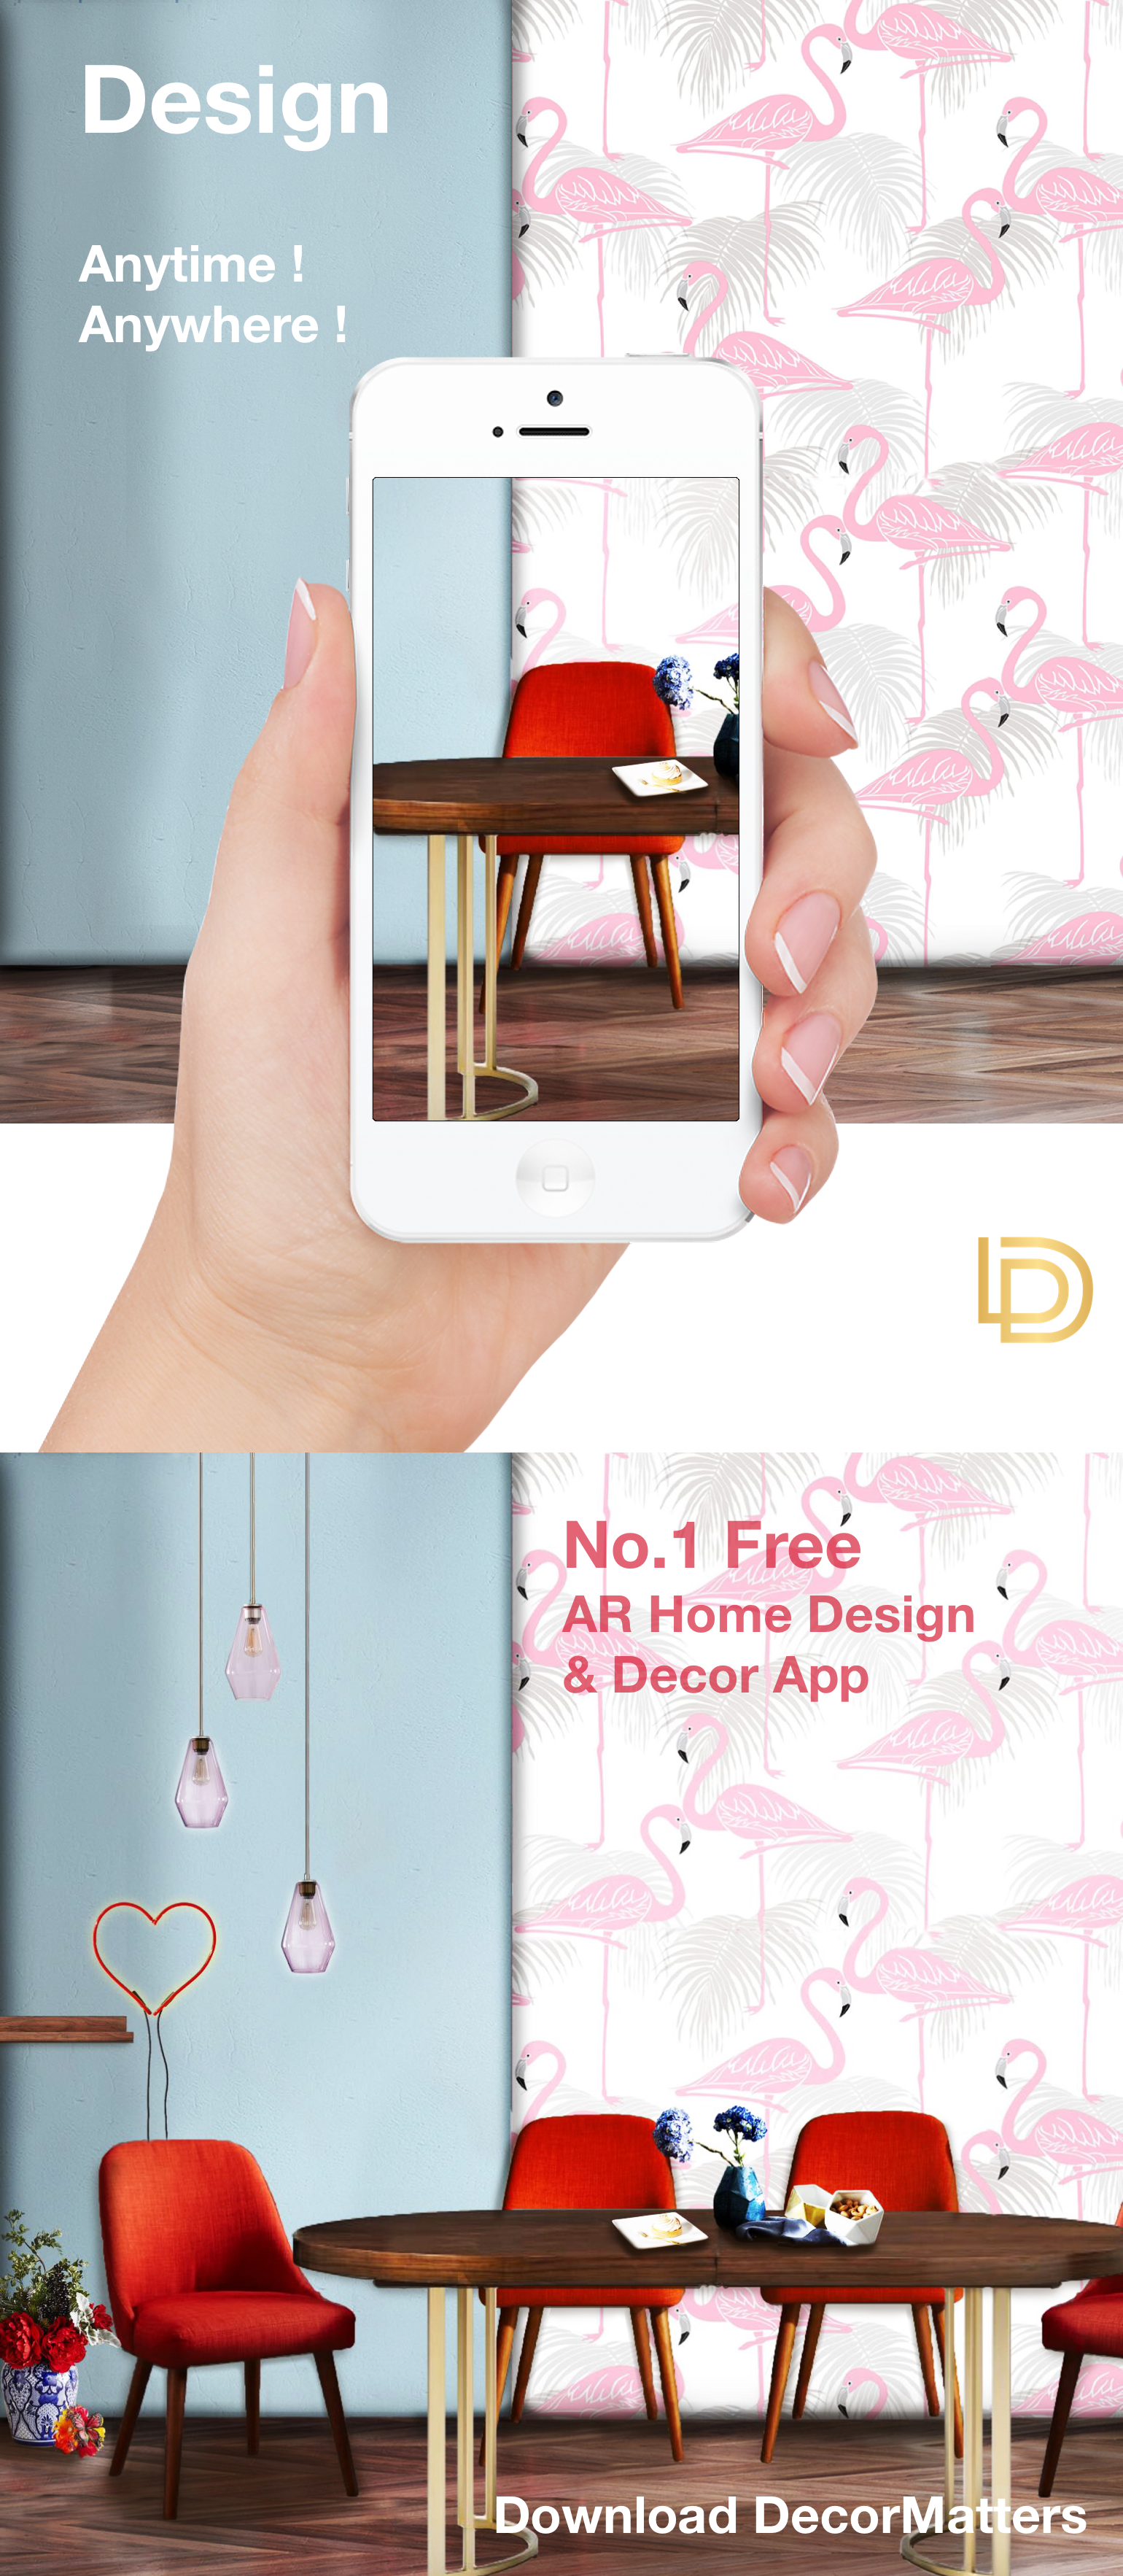 Play Interior Design Home Decor With No 1 Free Ar App Anytime And Anywhere Try Decormatters Today It S Home Goods Decor Casual Home Decor Home Design Decor